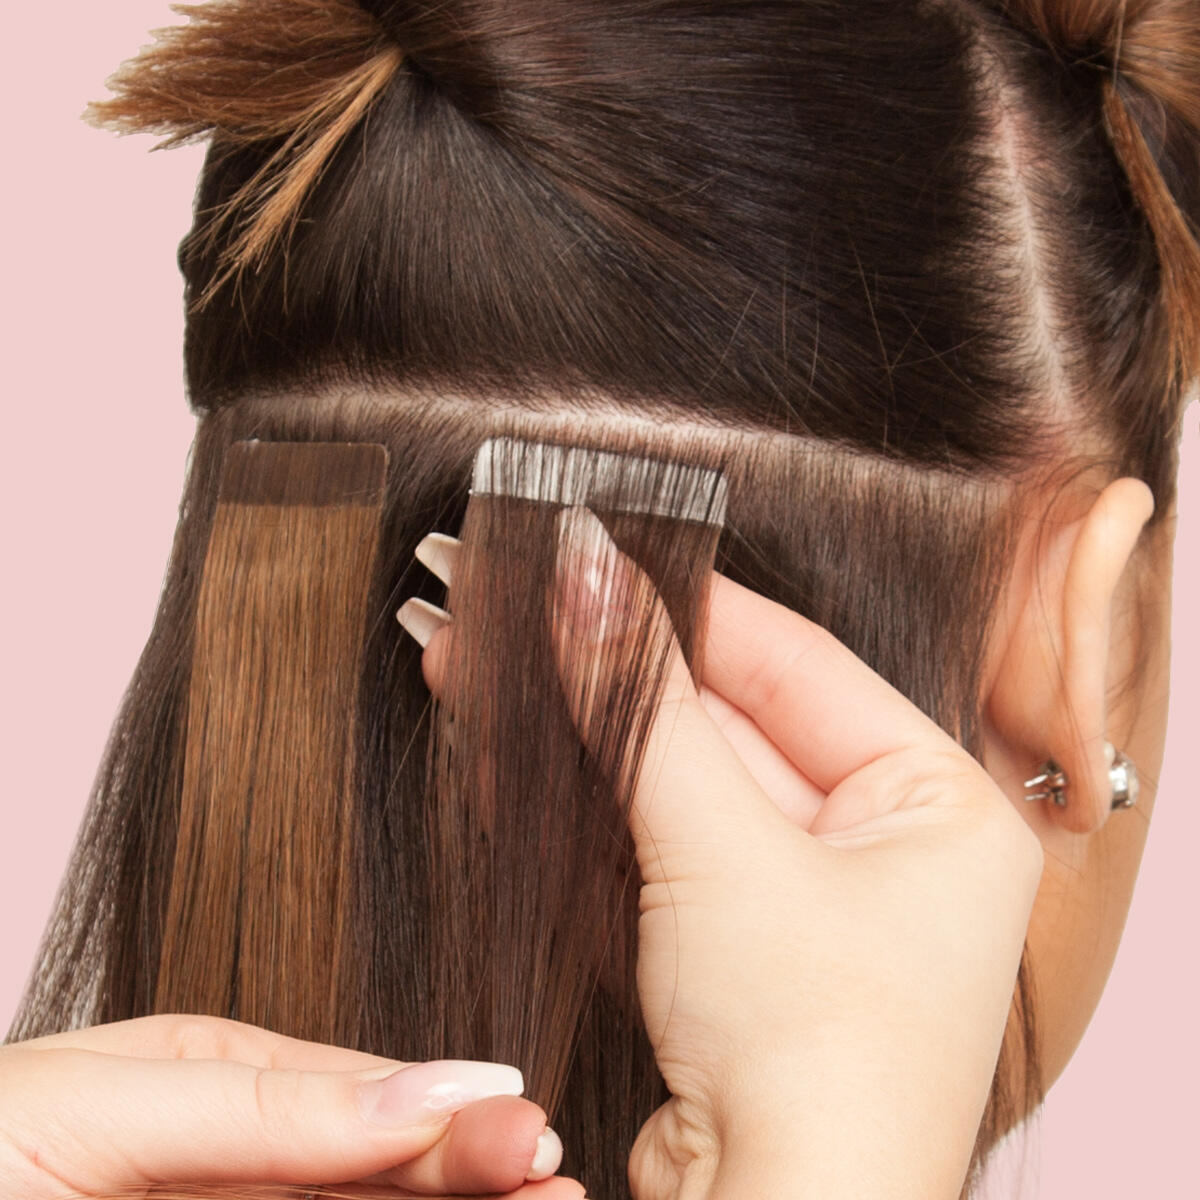 Tape extensions and shampoo